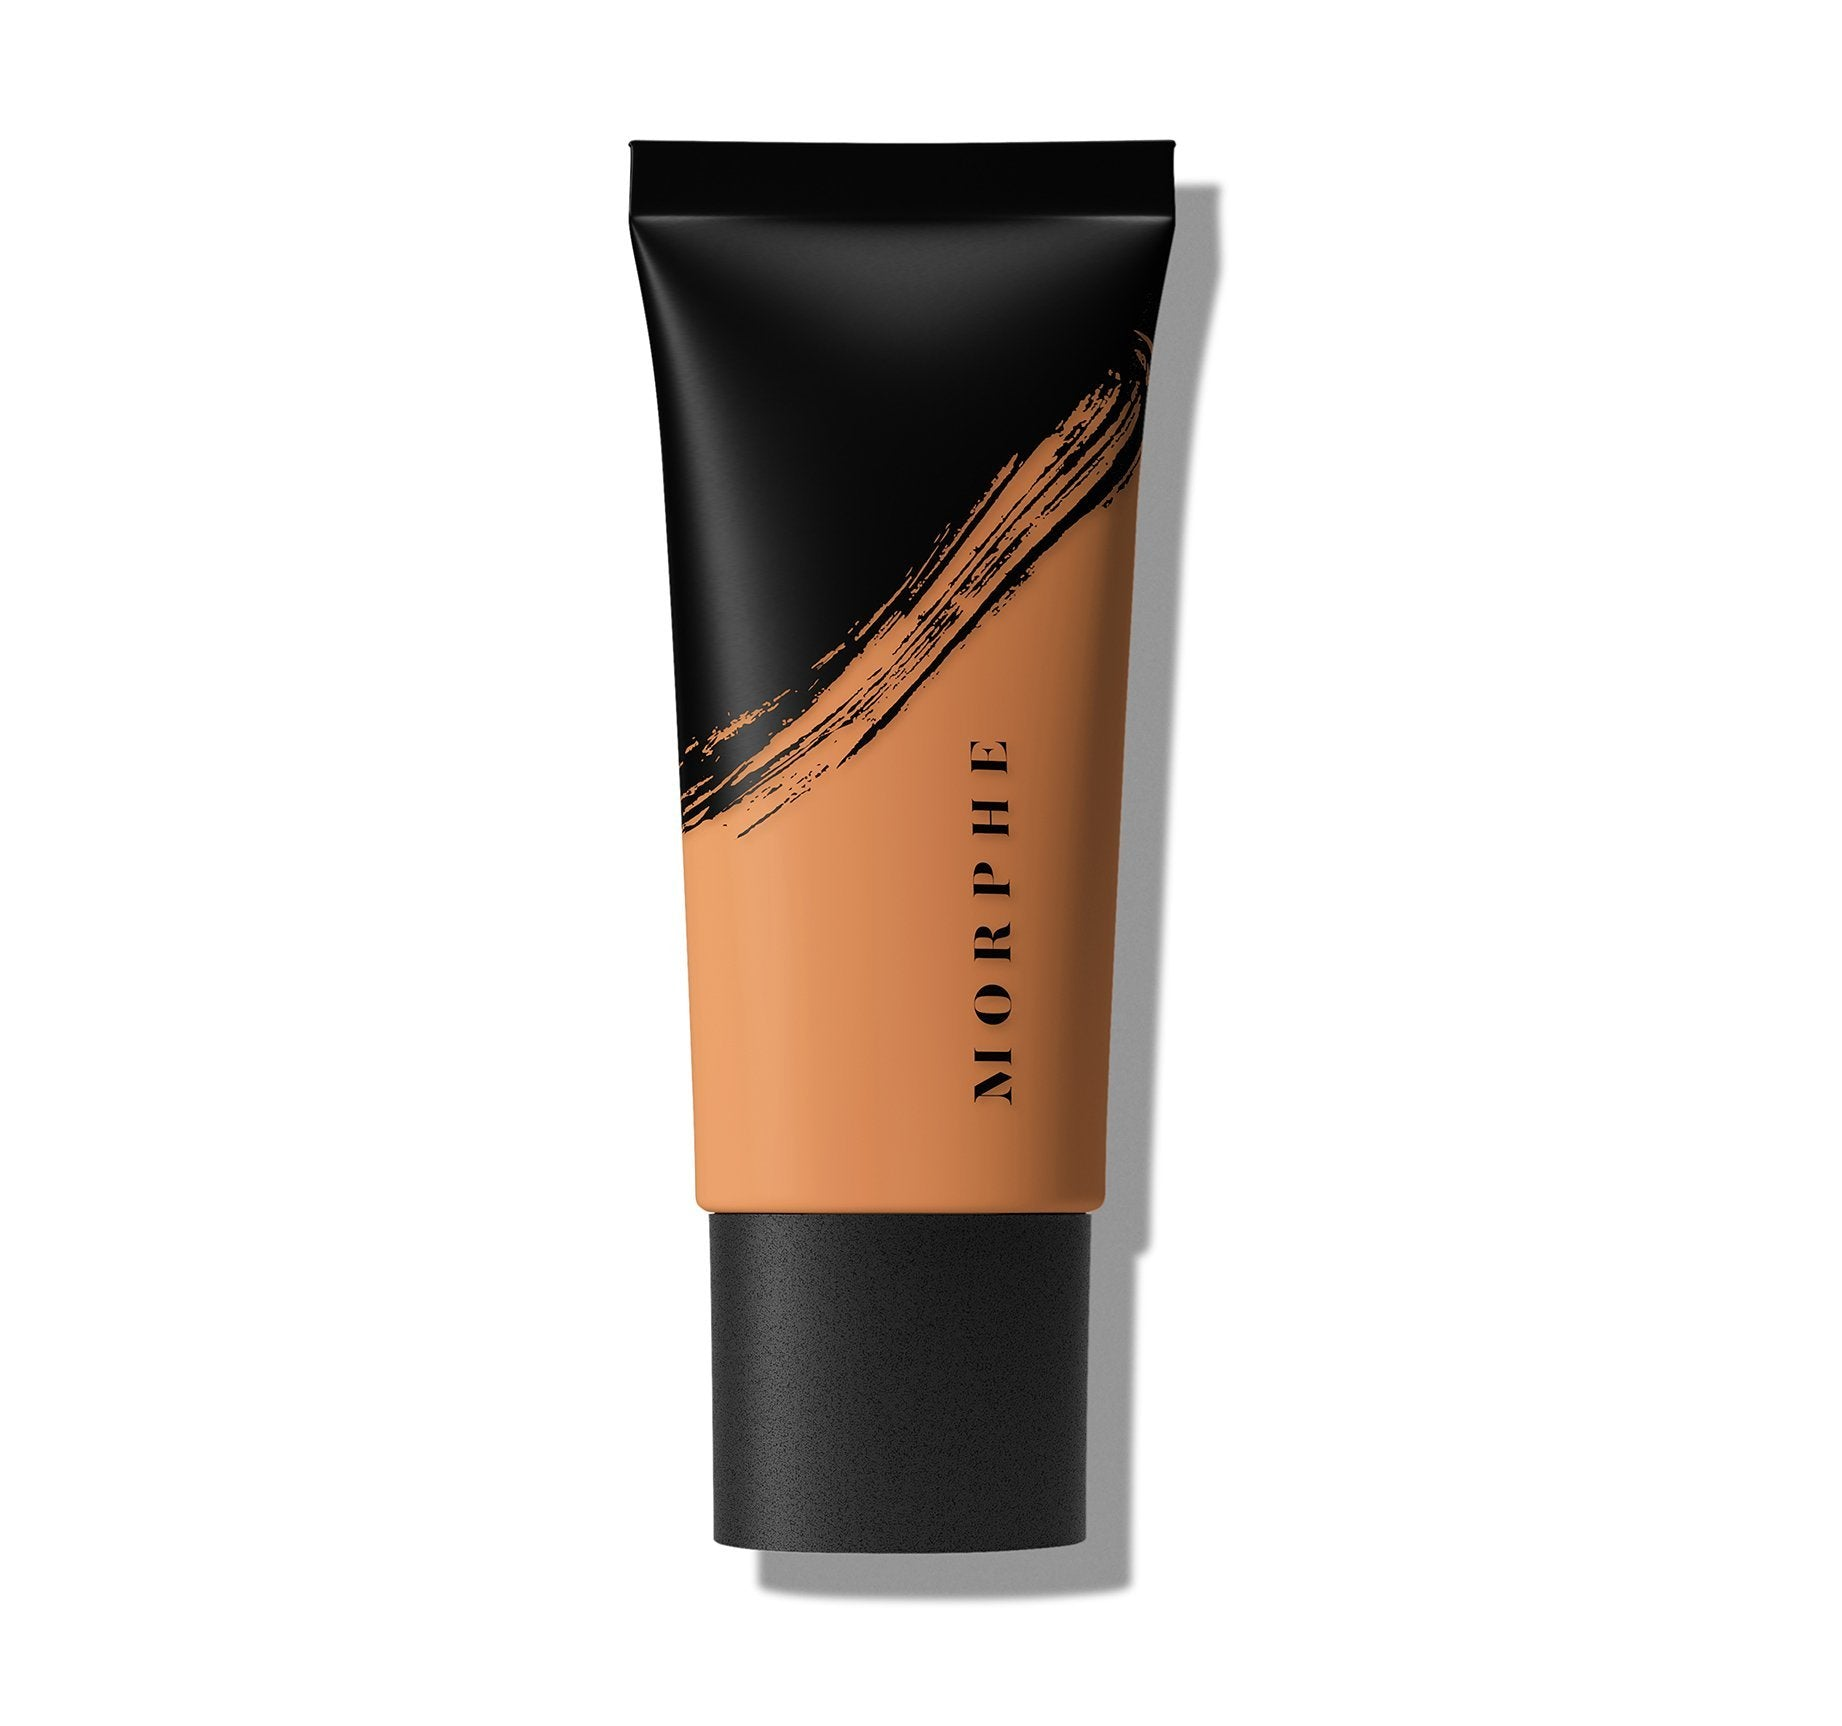 FLUIDITY FULL-COVERAGE FOUNDATION - F3.40, view larger image